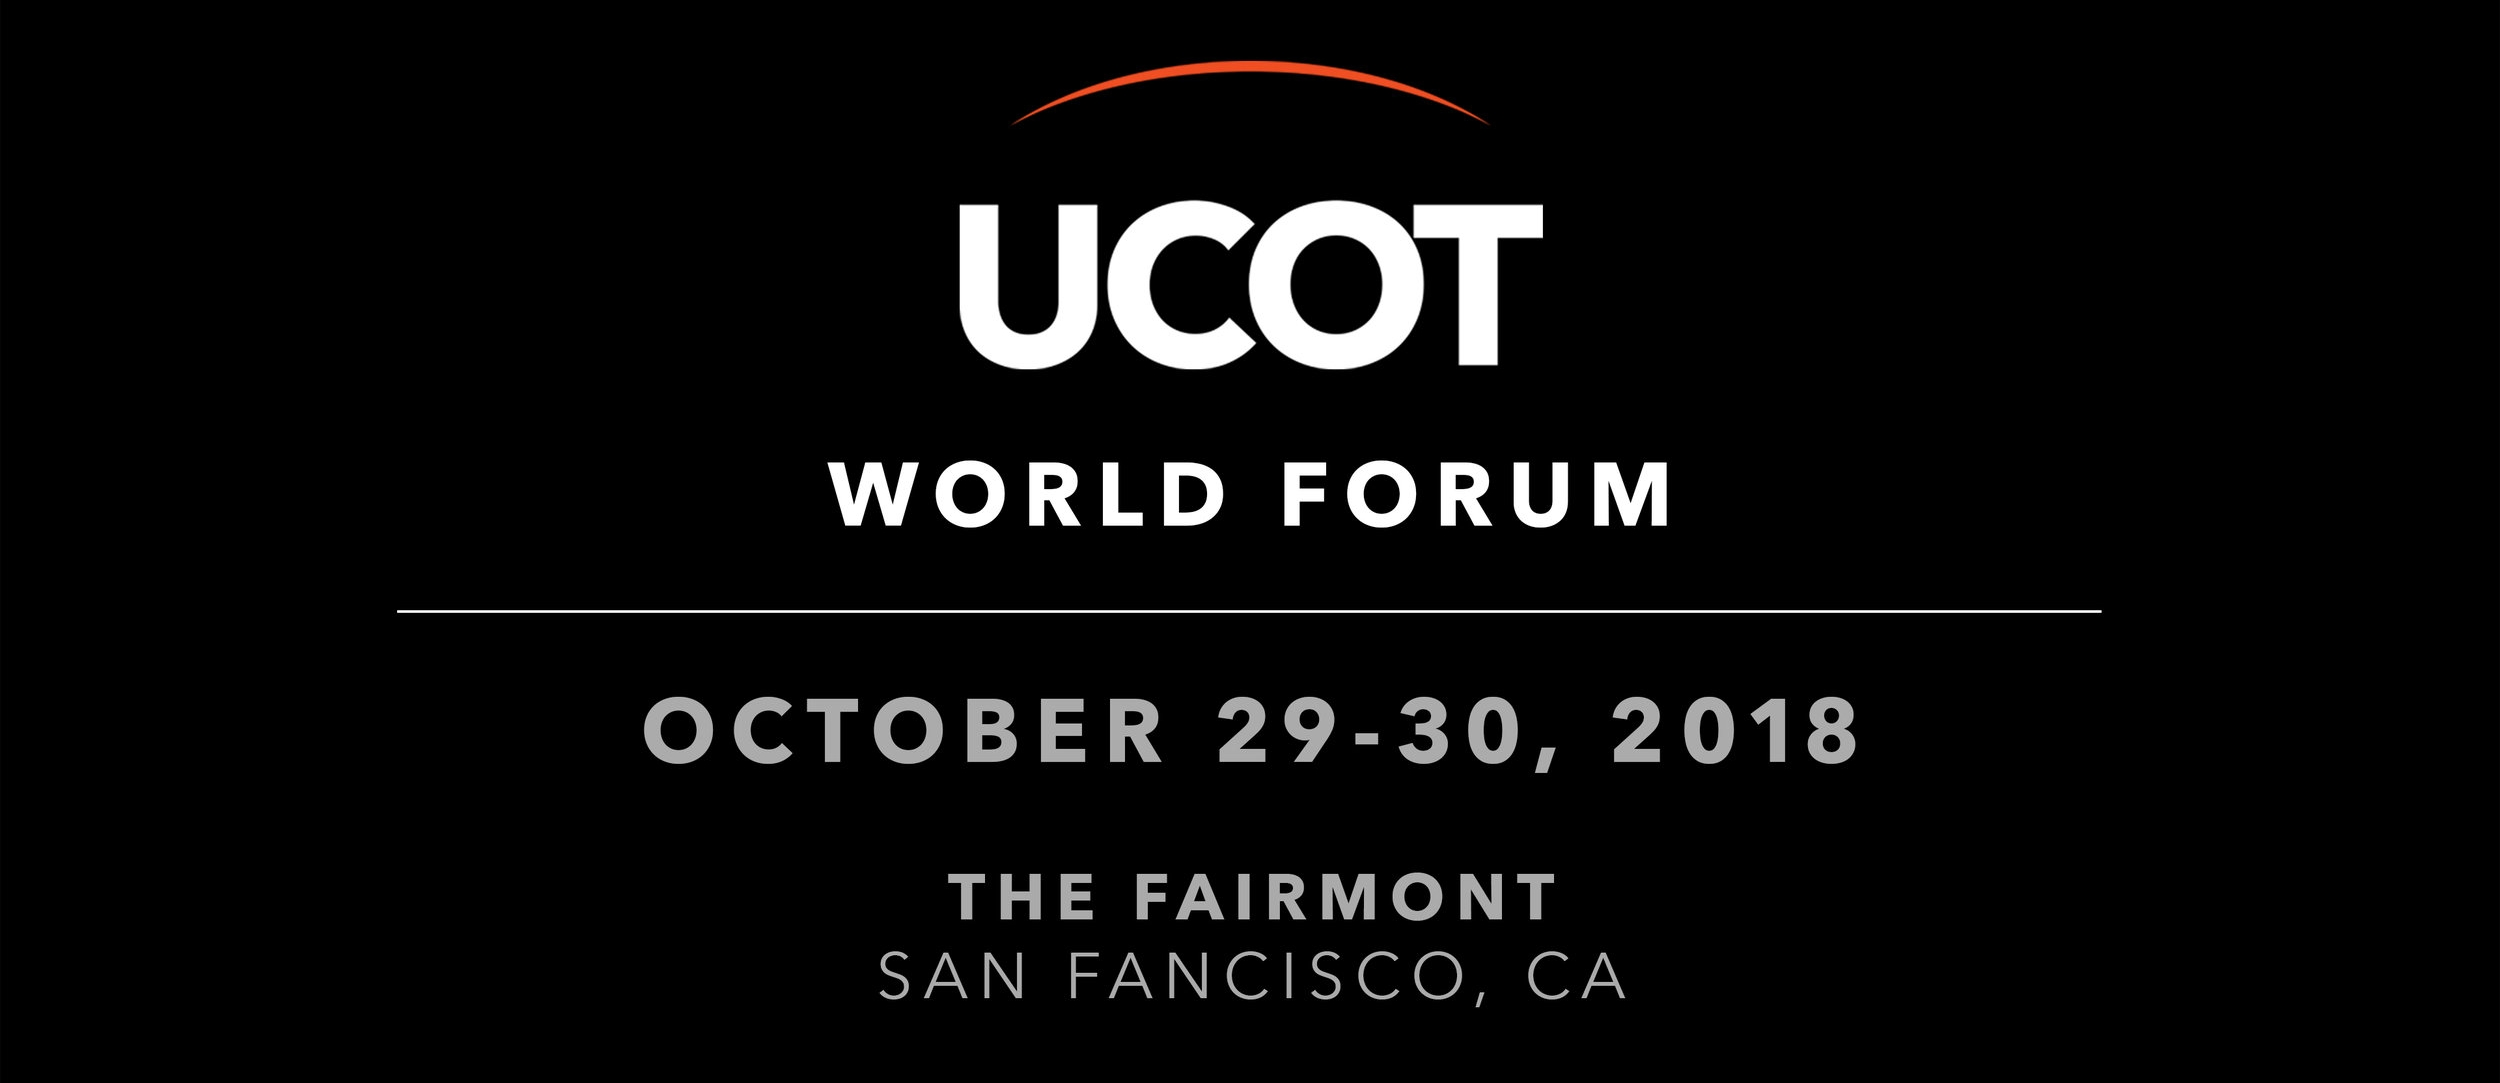 ucotworldforum-2018-logo.jpg